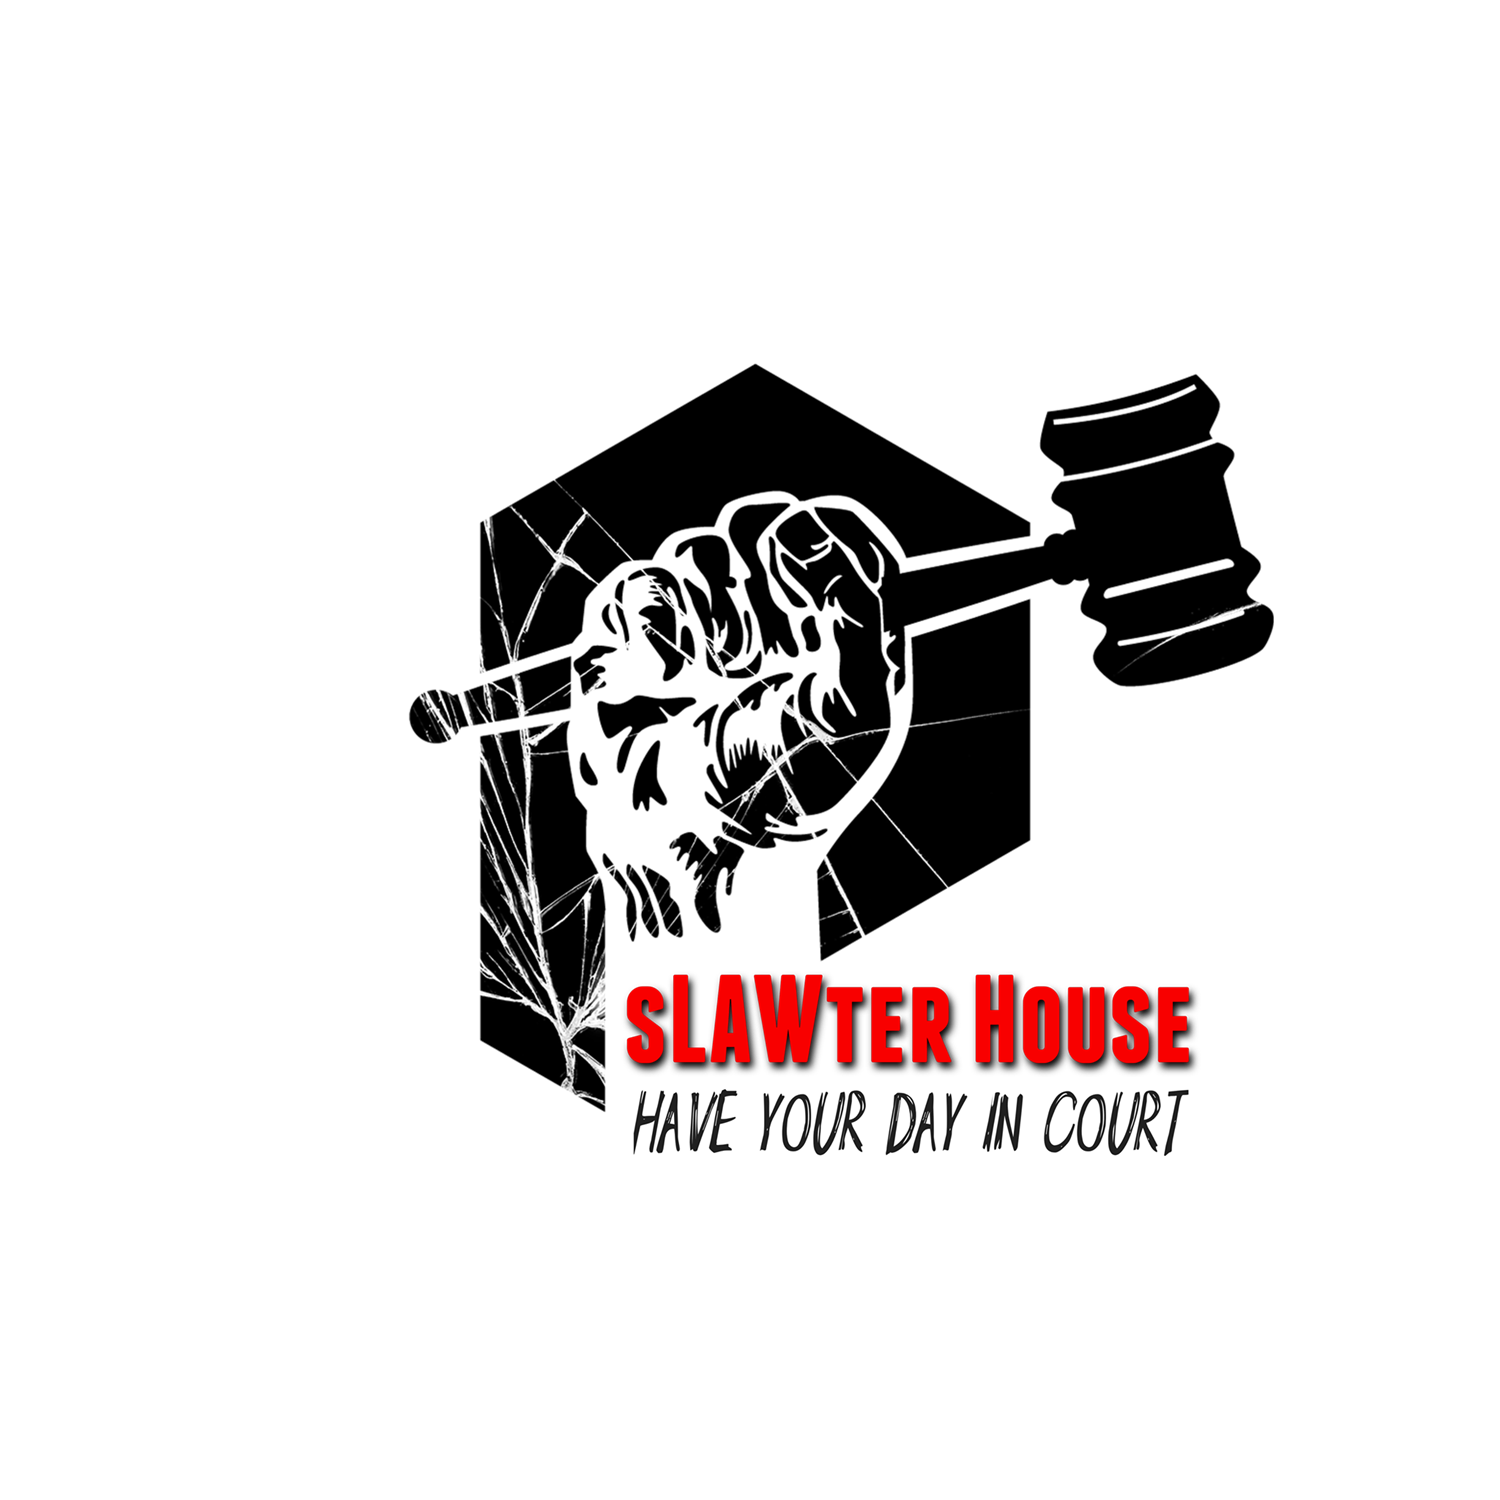 The sLAWter House image